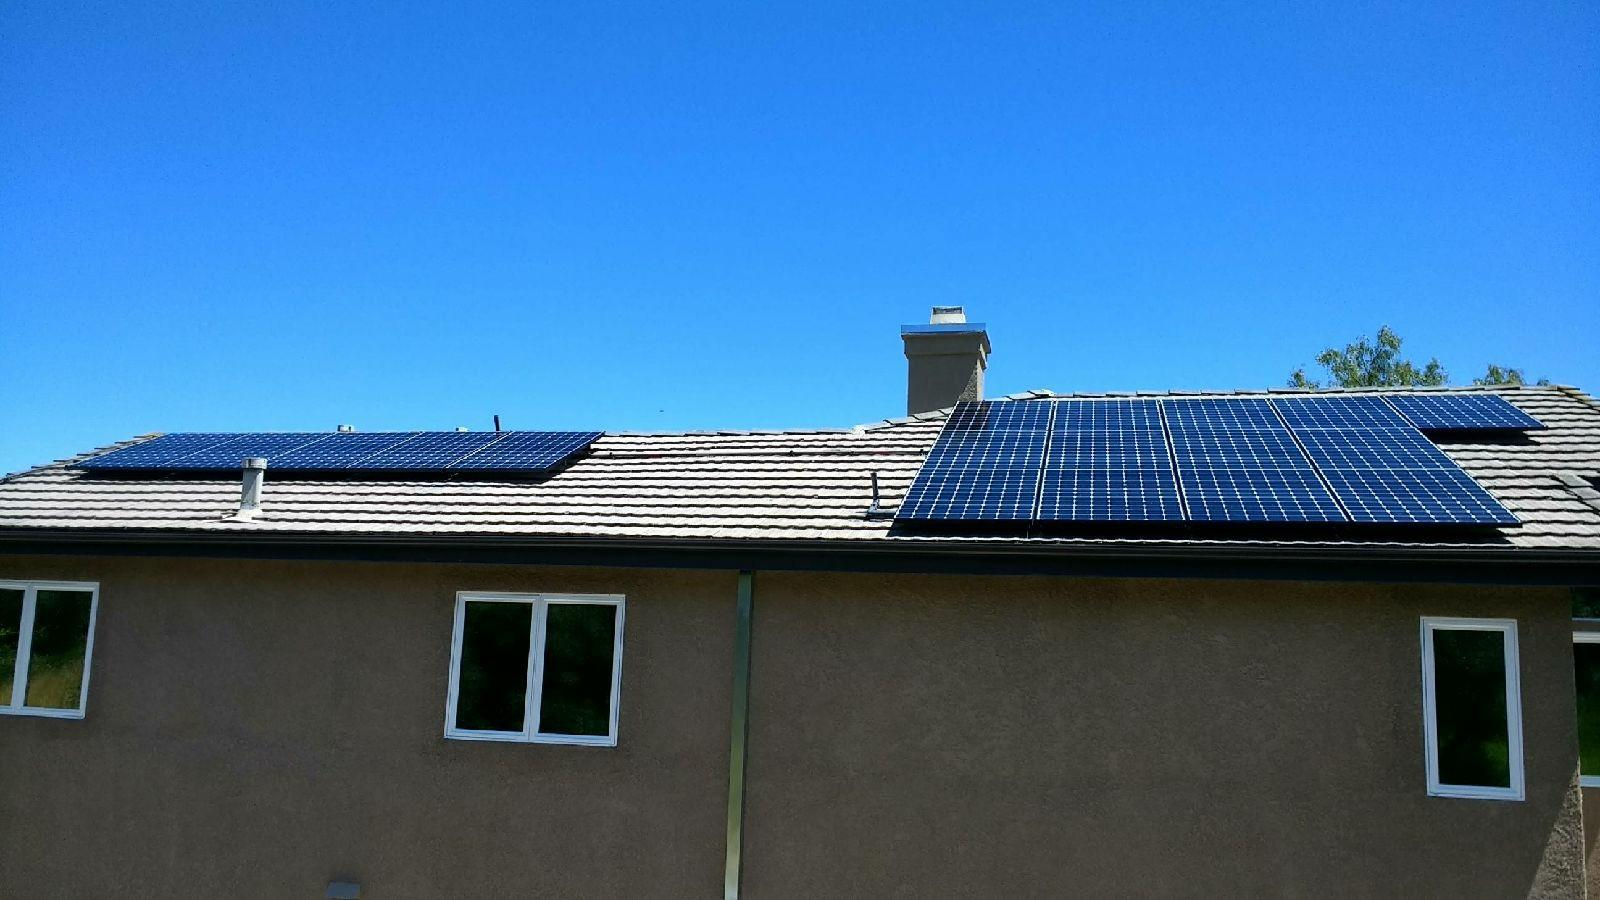 Scripps ranch single family pv san diego ca energysage for Solar panel cost for 1000 sq ft home